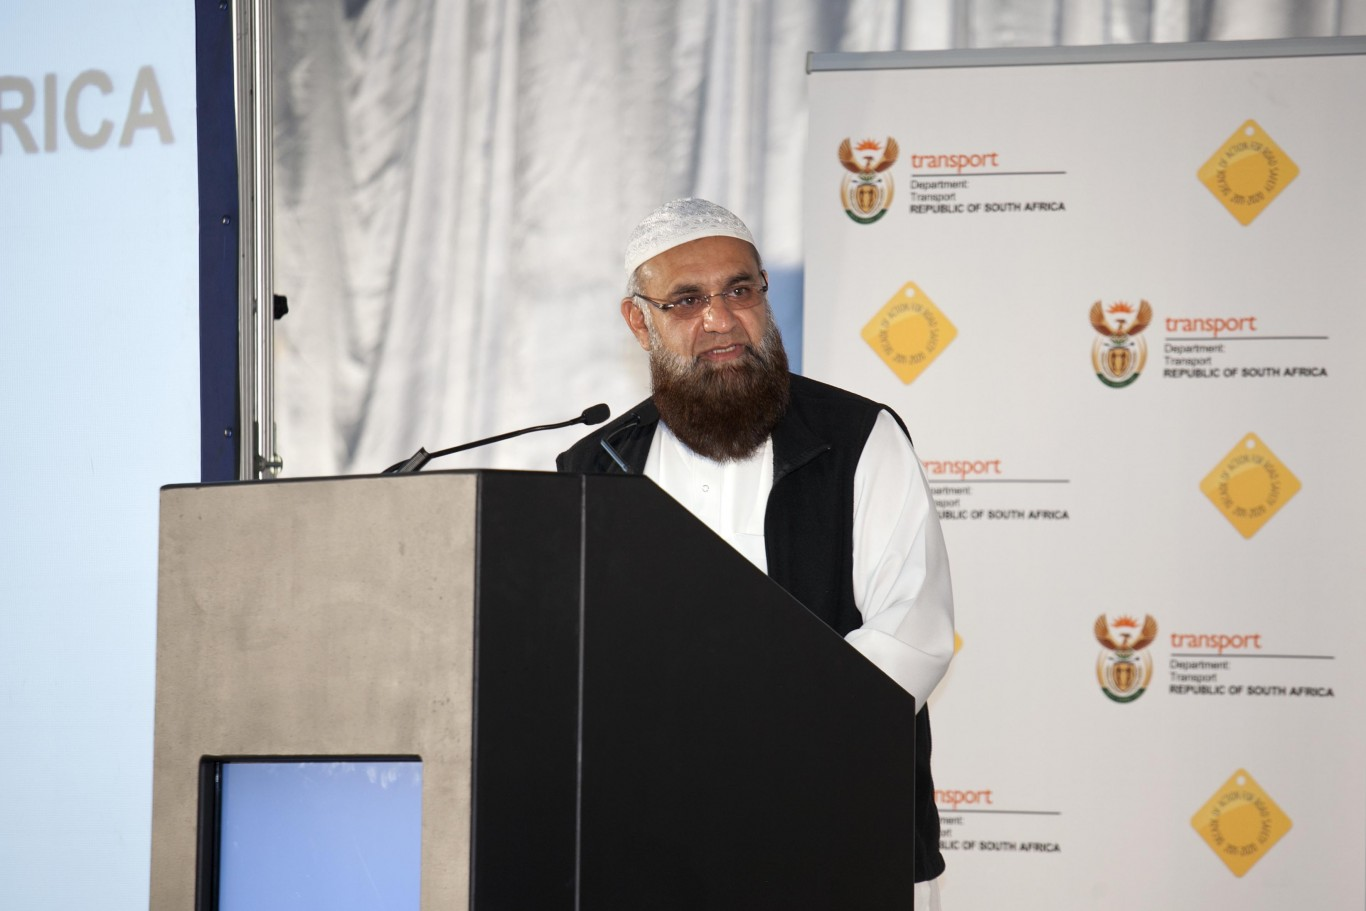 MEC Ismail Vadi on R500 sinkhole repairs